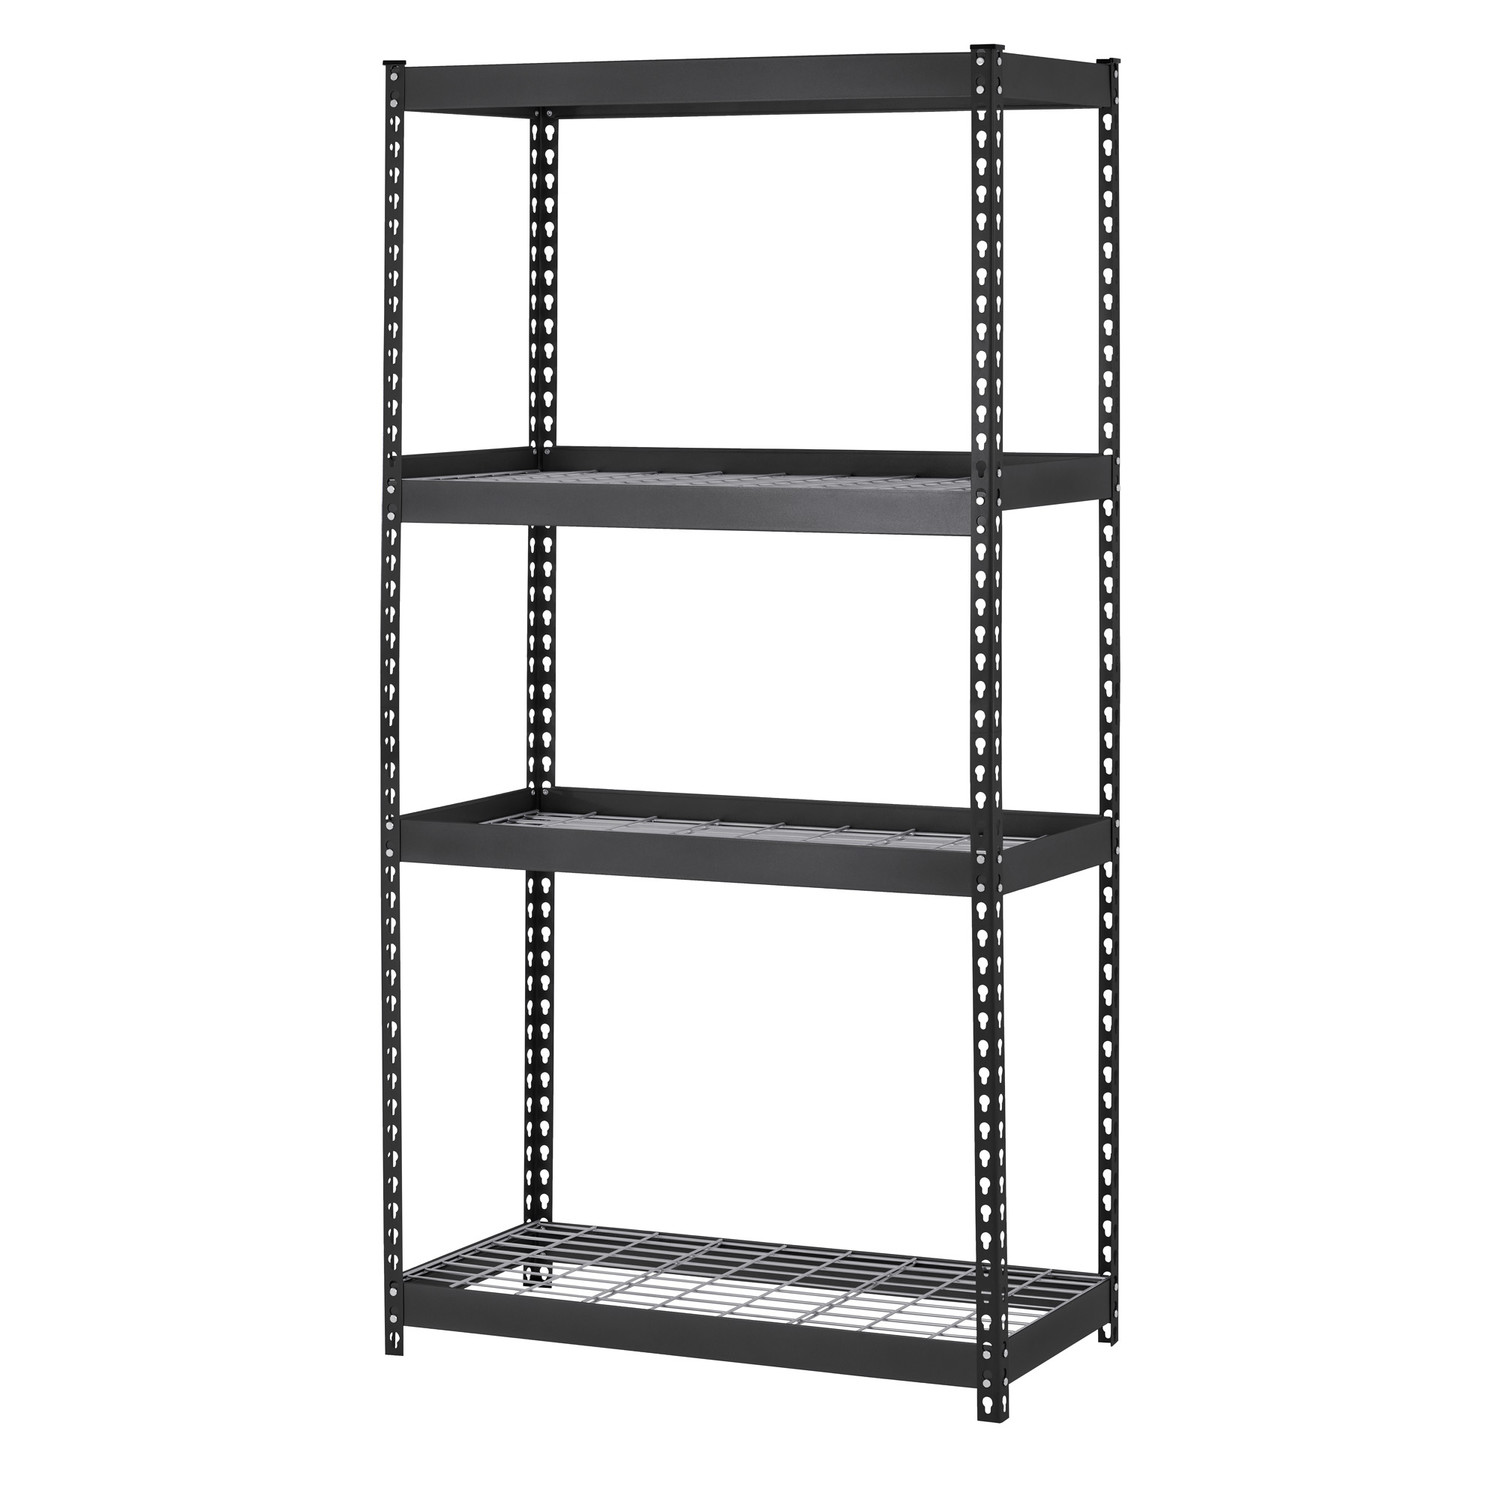 Use Edsal Shelving At Your Garage To Save Your Tools: Chic H Steel Four Shelf Heavy Duty Shelving Unit In Black By Edsal Shelving For Garage Furniture Ideas